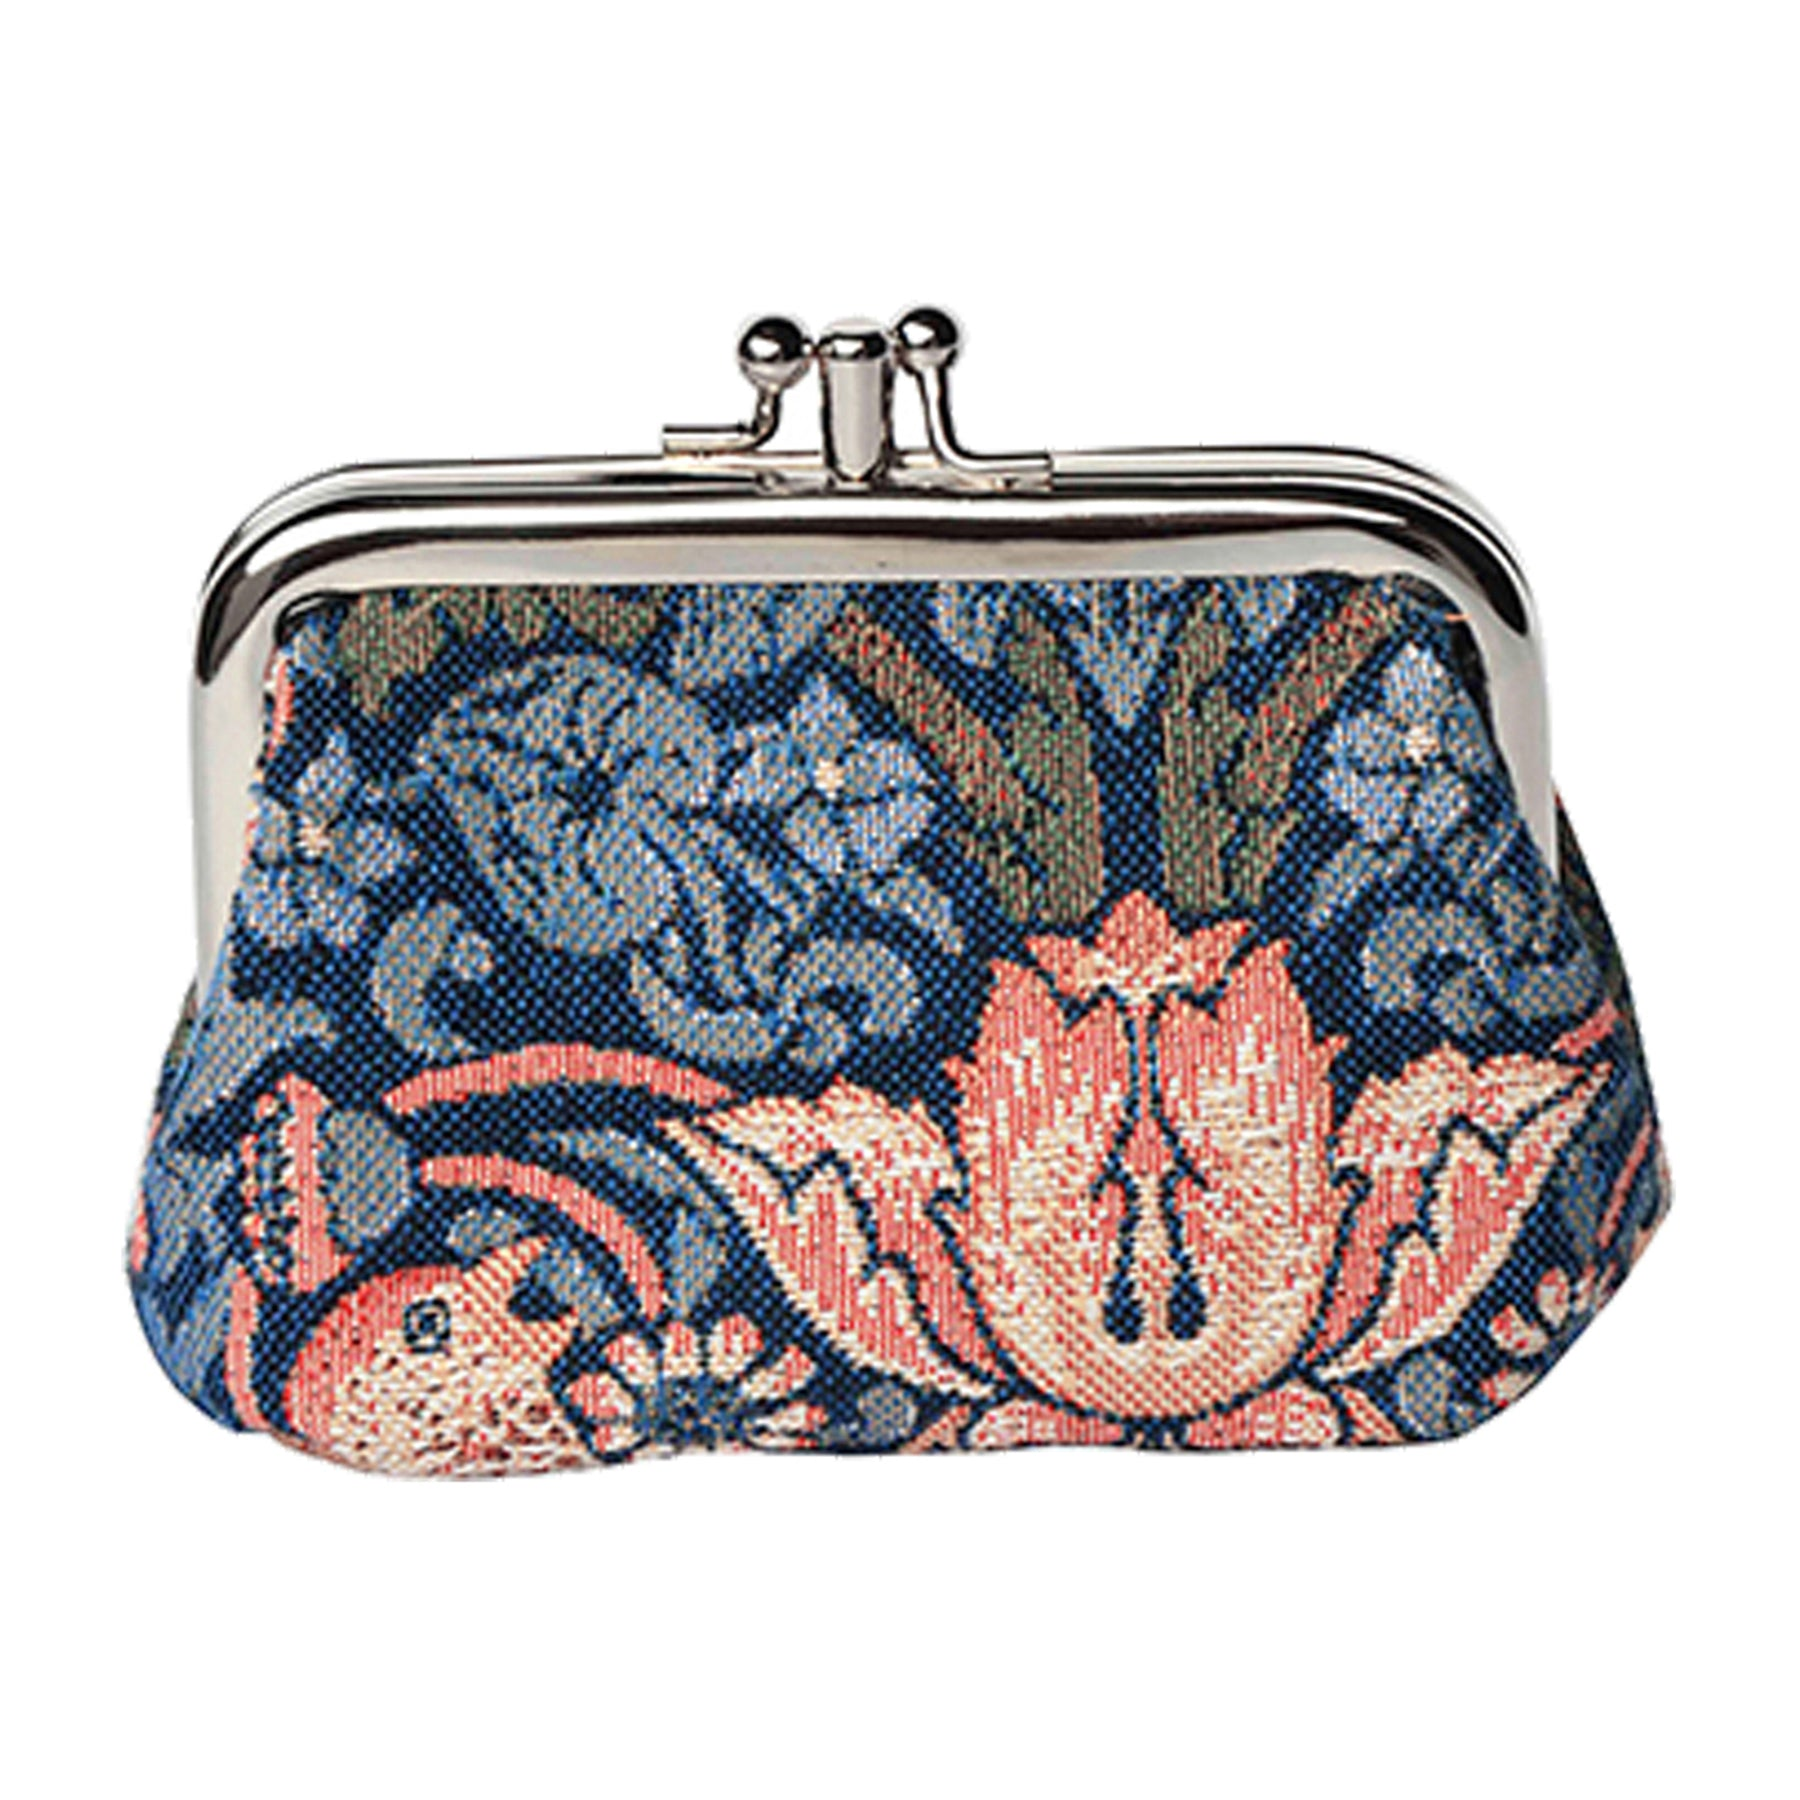 Strawberry Thief Coin Purse in Blue